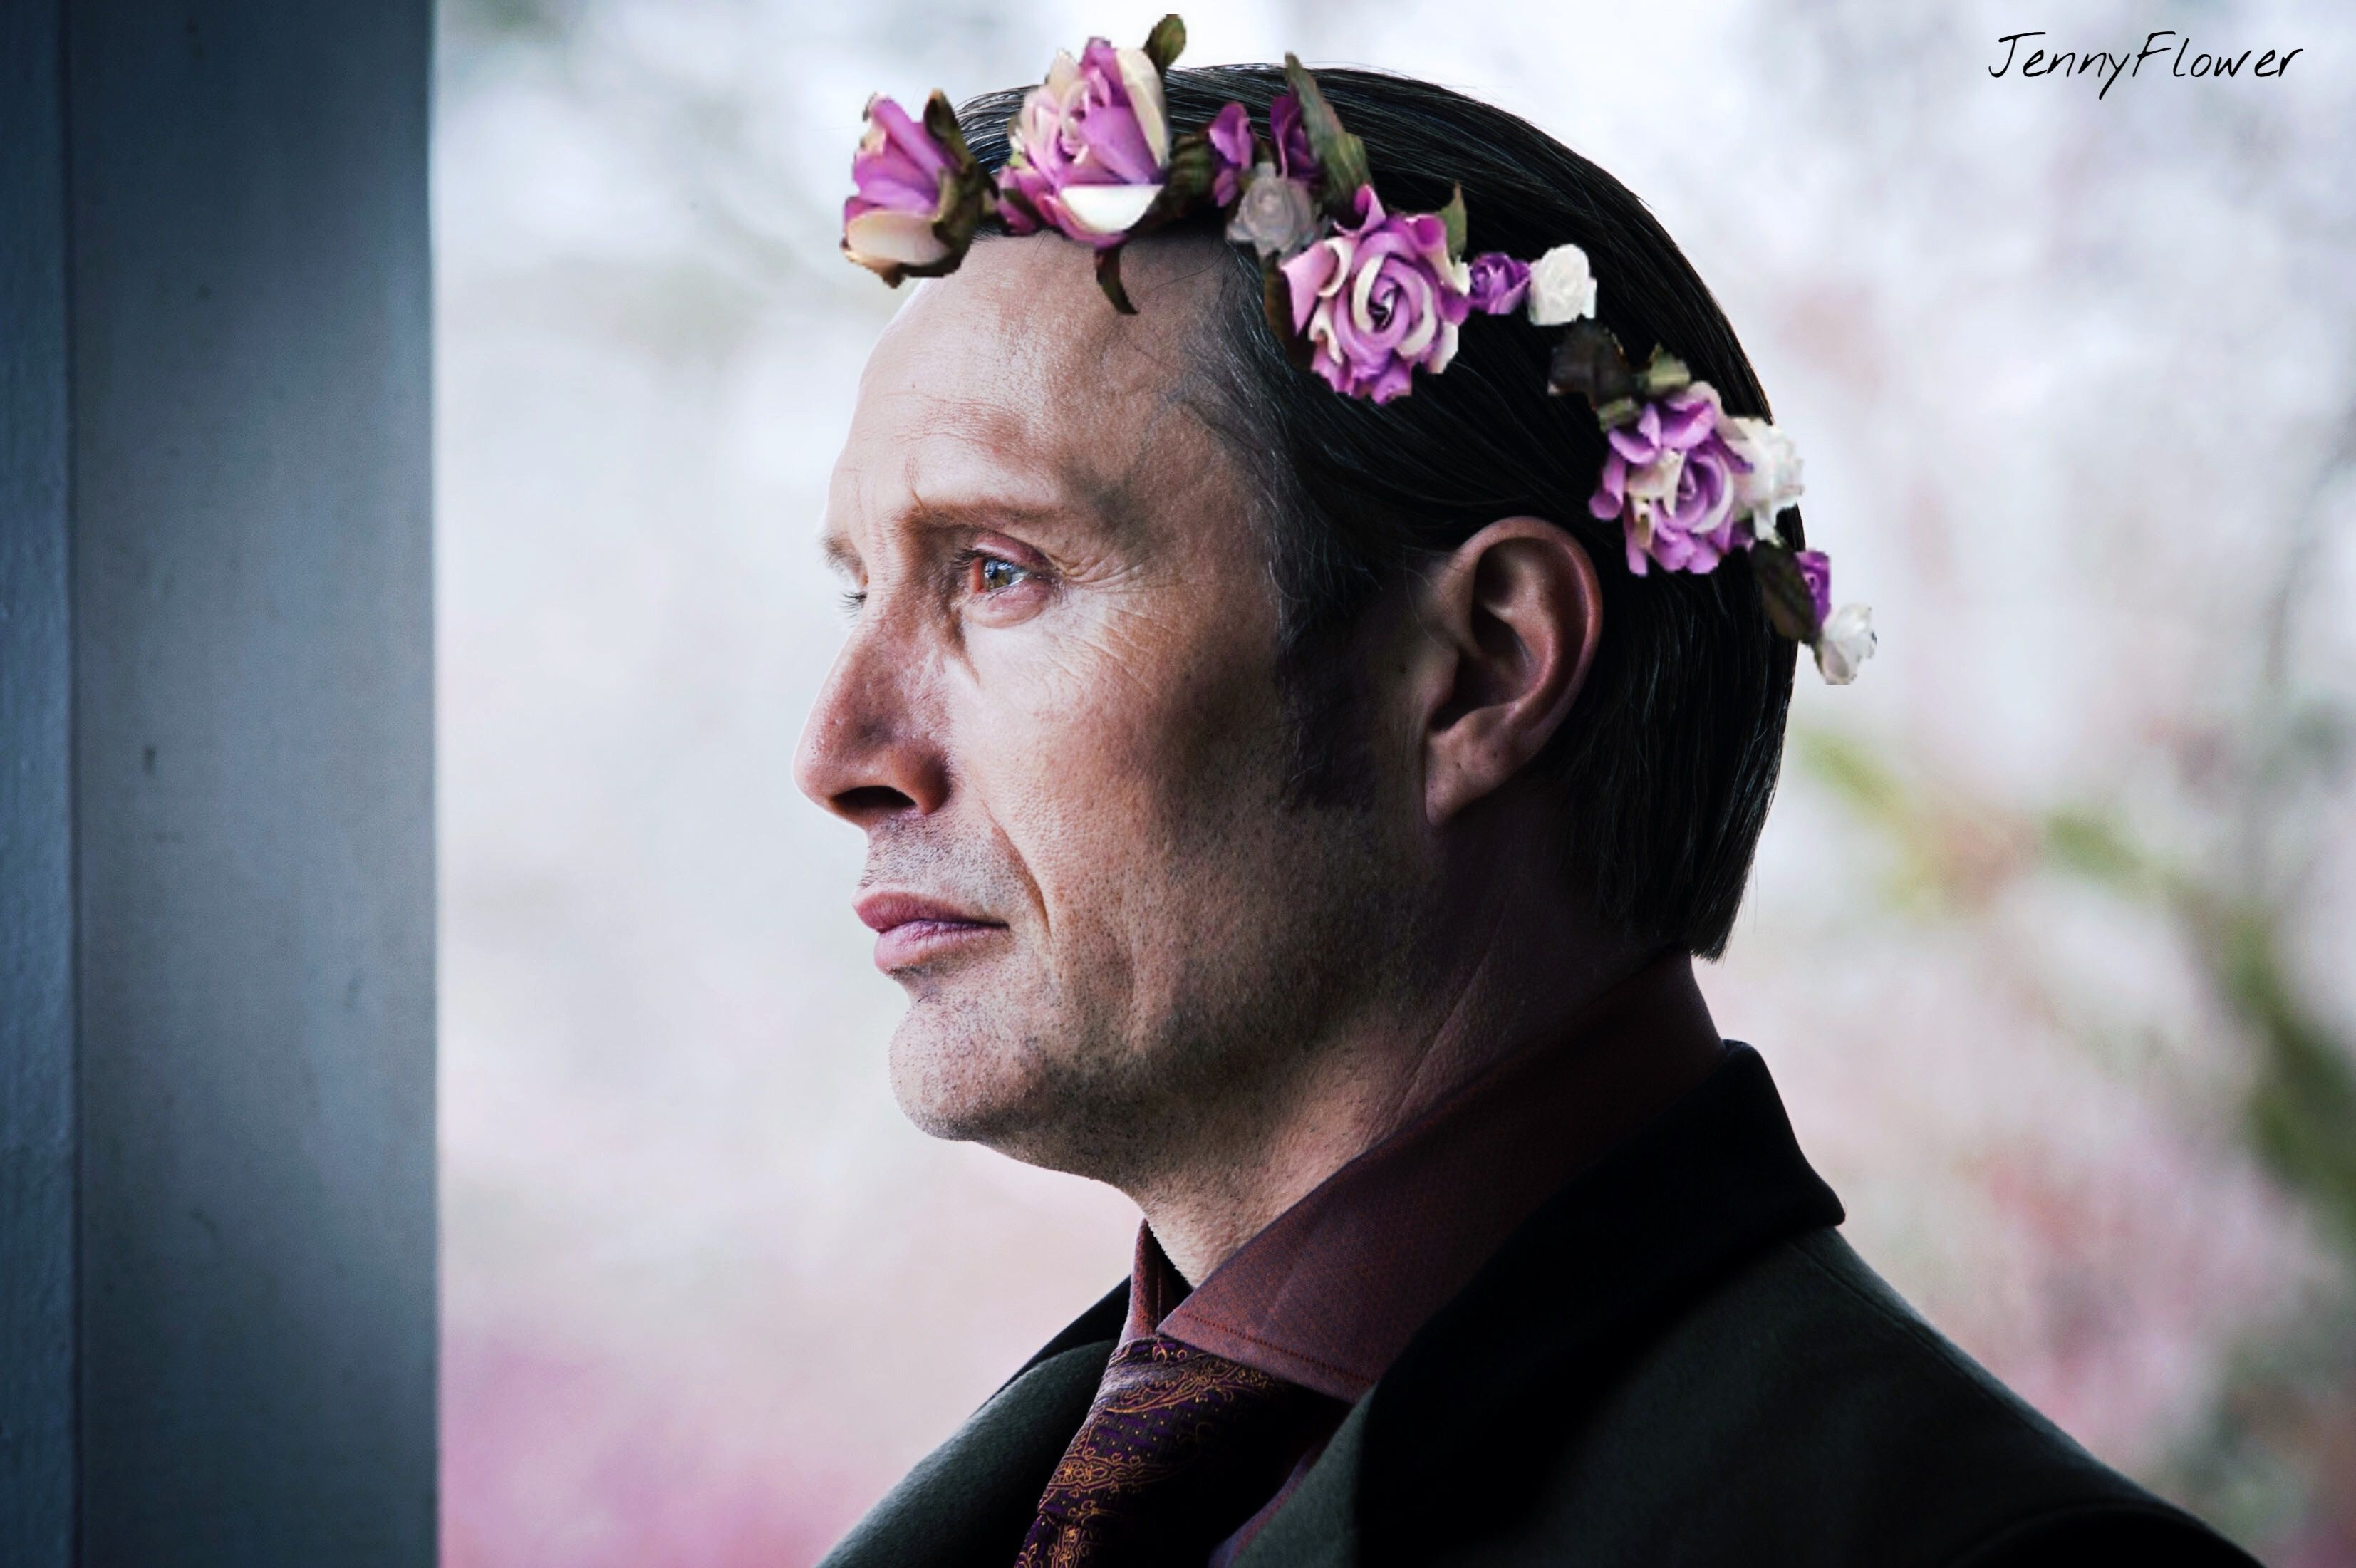 Hannibal Flowers Crown Jennyflower Hannibal Lecter Art